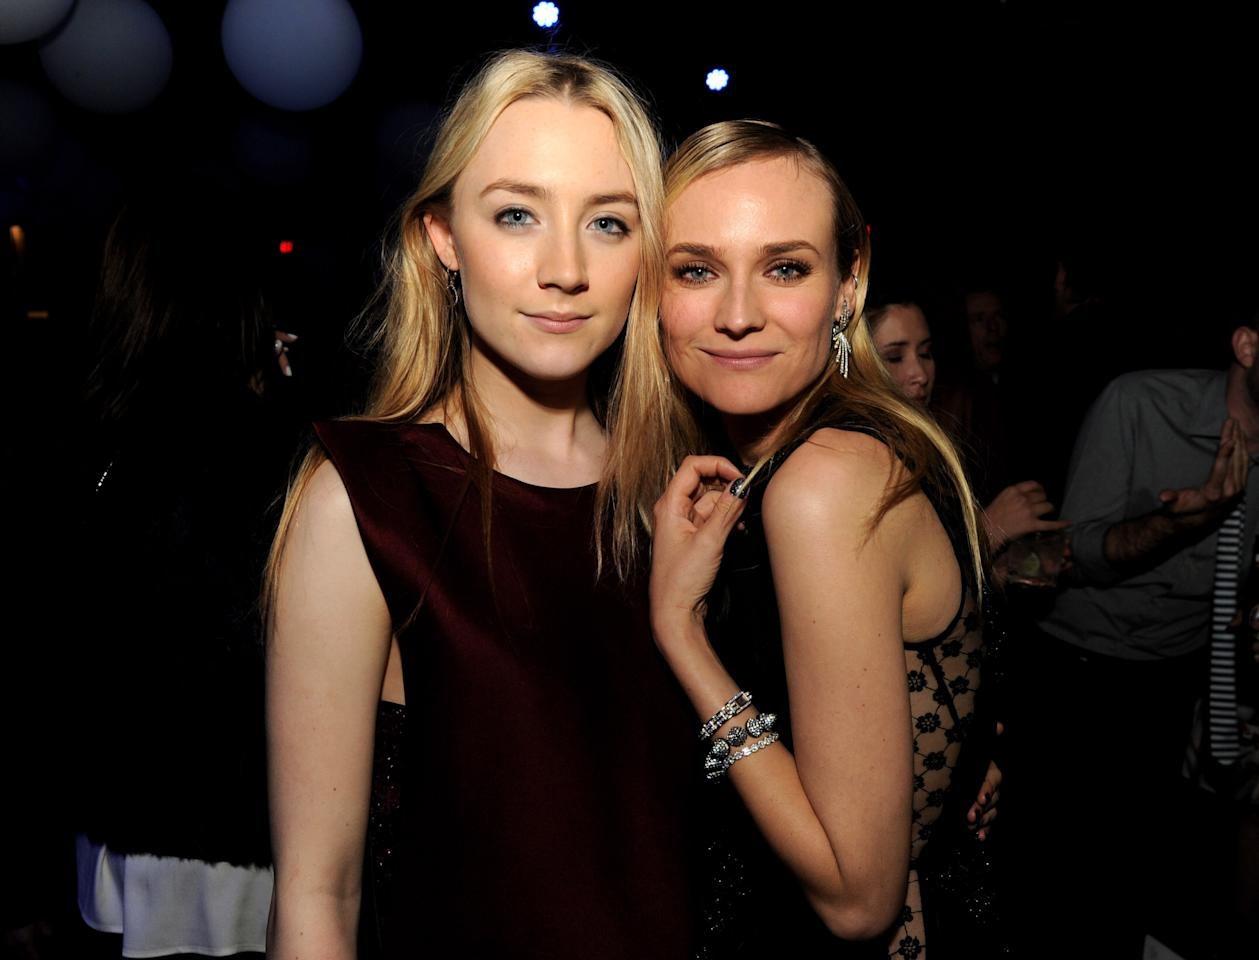 """LOS ANGELES, CA - MARCH 19:  Actresses Saoirse Ronan (L) and Diane Kruger pose at the after party for the premiere of Open Road Films' """"The Host"""" at Lure on March 19, 2013 in Los Angeles, California.  (Photo by Kevin Winter/Getty Images)"""